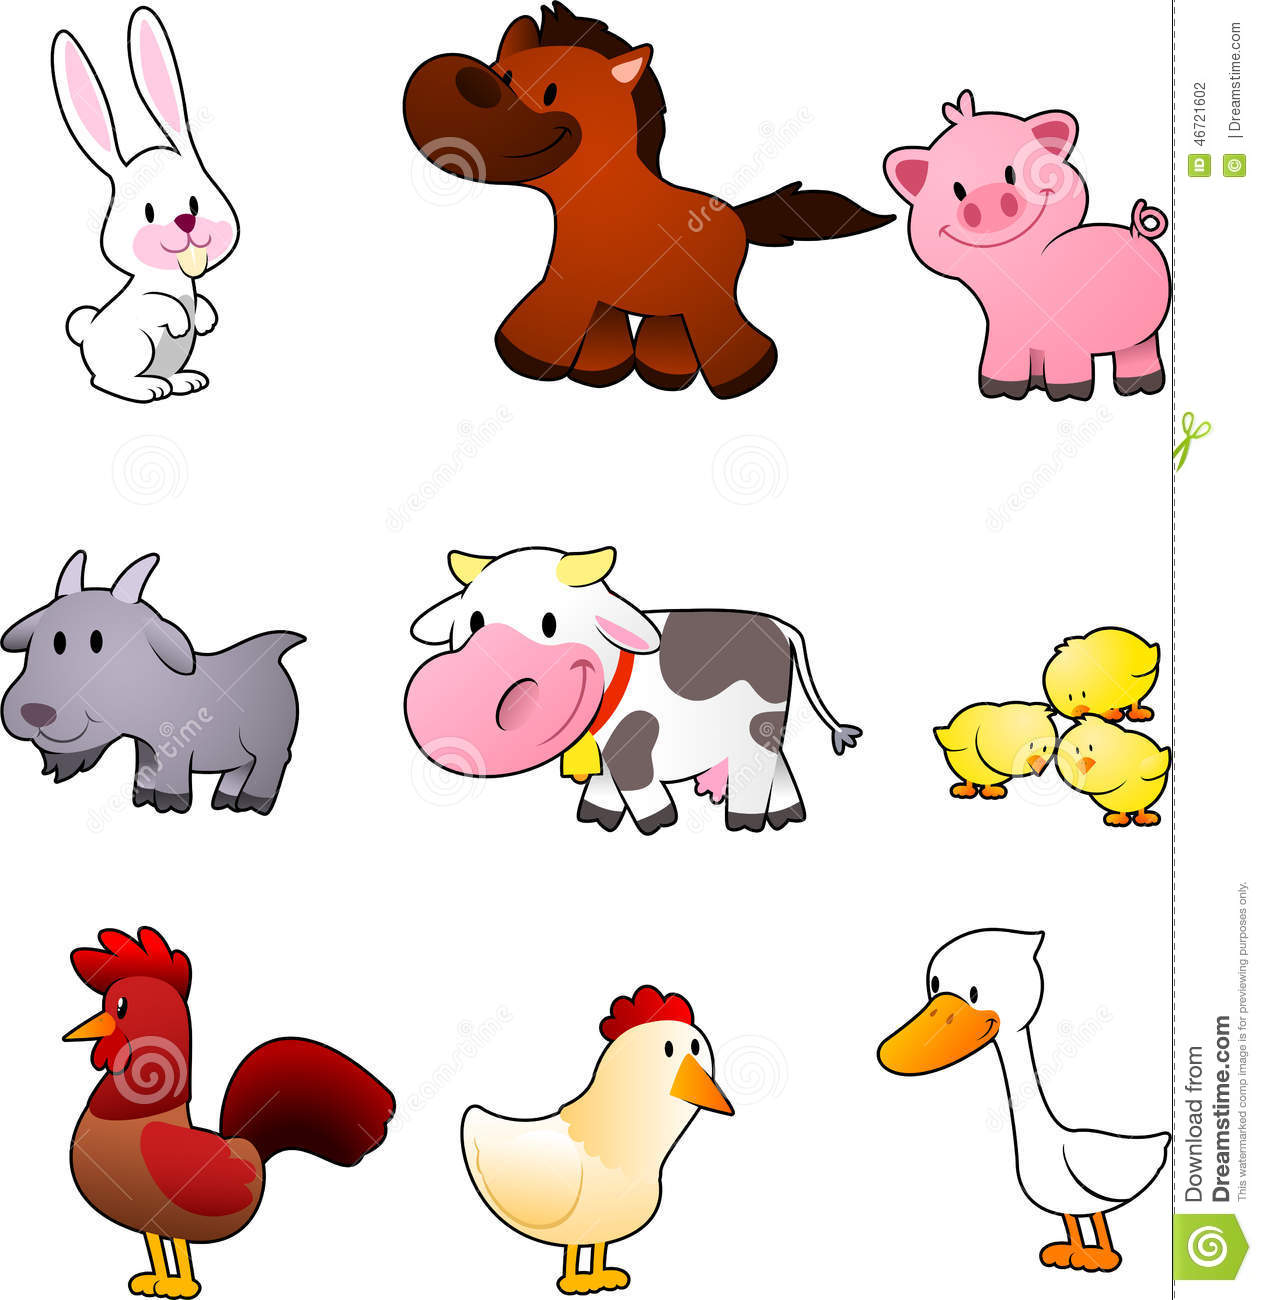 th?id=OIP.jQmijALhDTD7duvgWvO_rgEjEs&pid=15.1 along with baby goat coloring pages 1 on baby goat coloring pages together with baby goat coloring pages 2 on baby goat coloring pages including baby goat coloring pages 3 on baby goat coloring pages along with baby goat coloring pages 4 on baby goat coloring pages